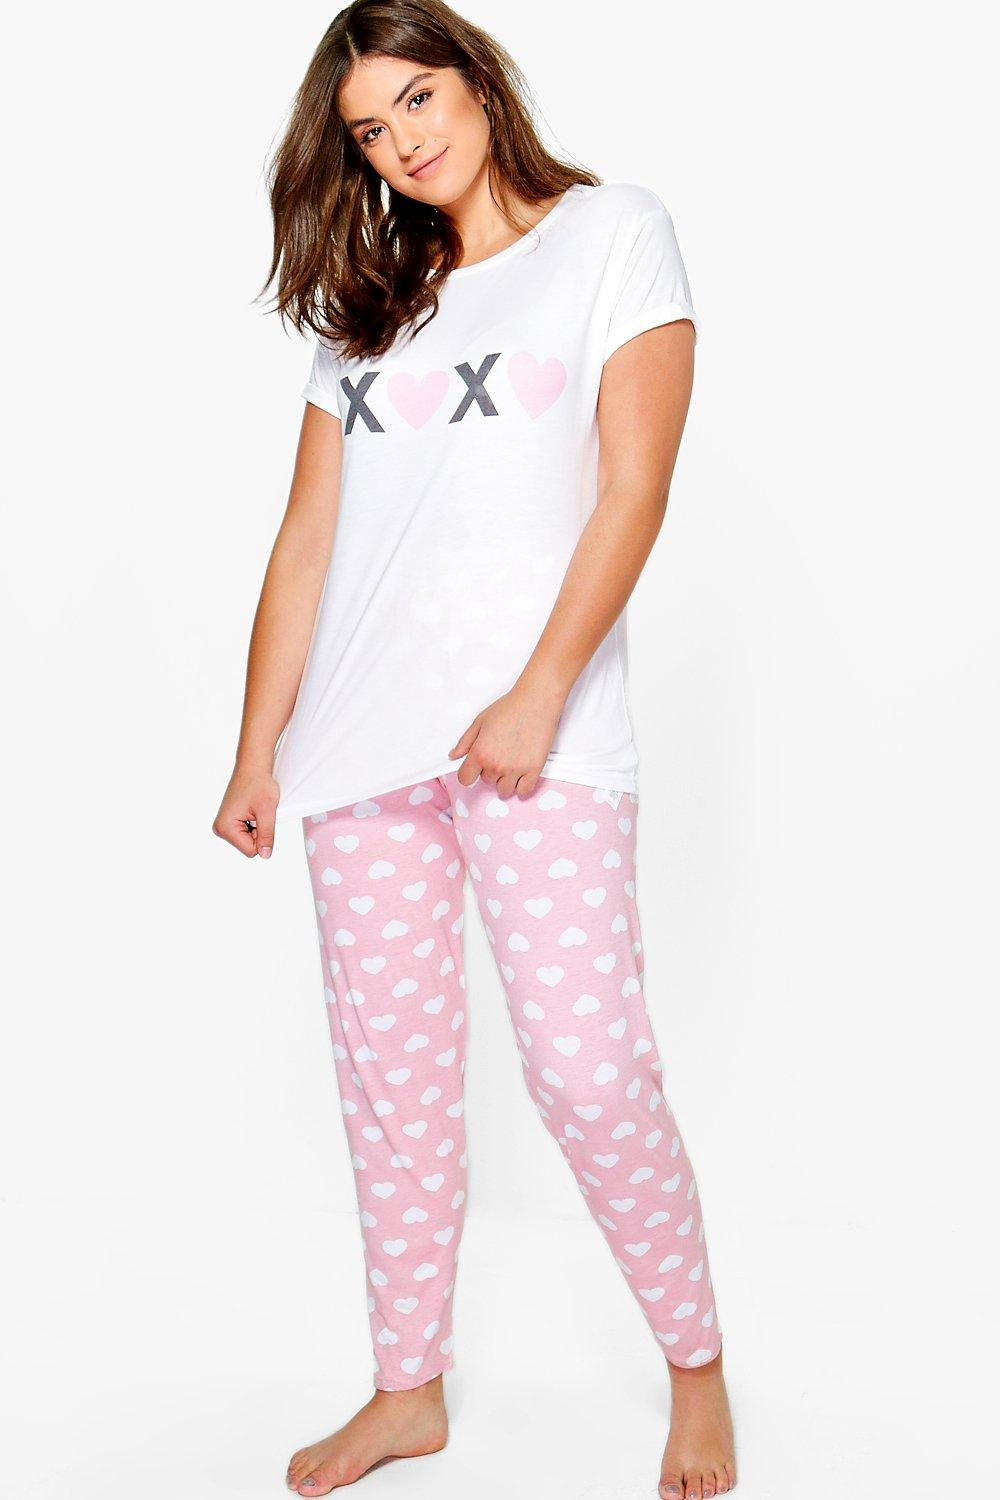 Plus Rebecca XOXO Printed PJ Set